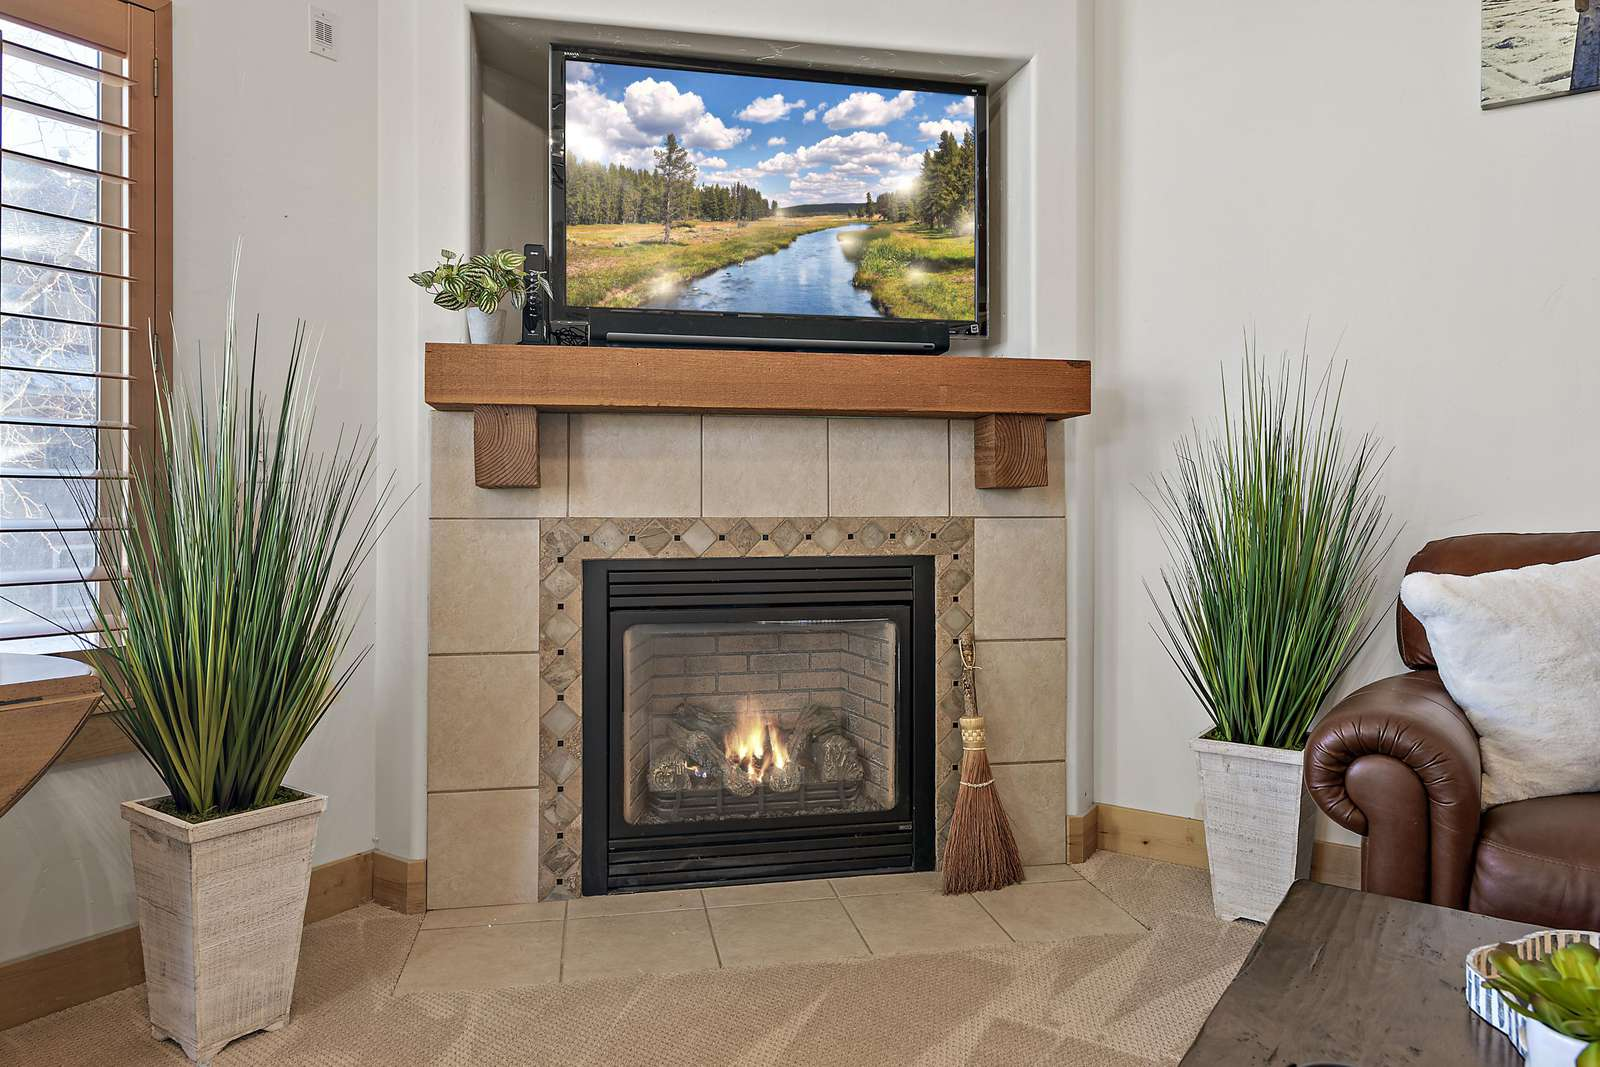 Fireplace and TV to enhance experience